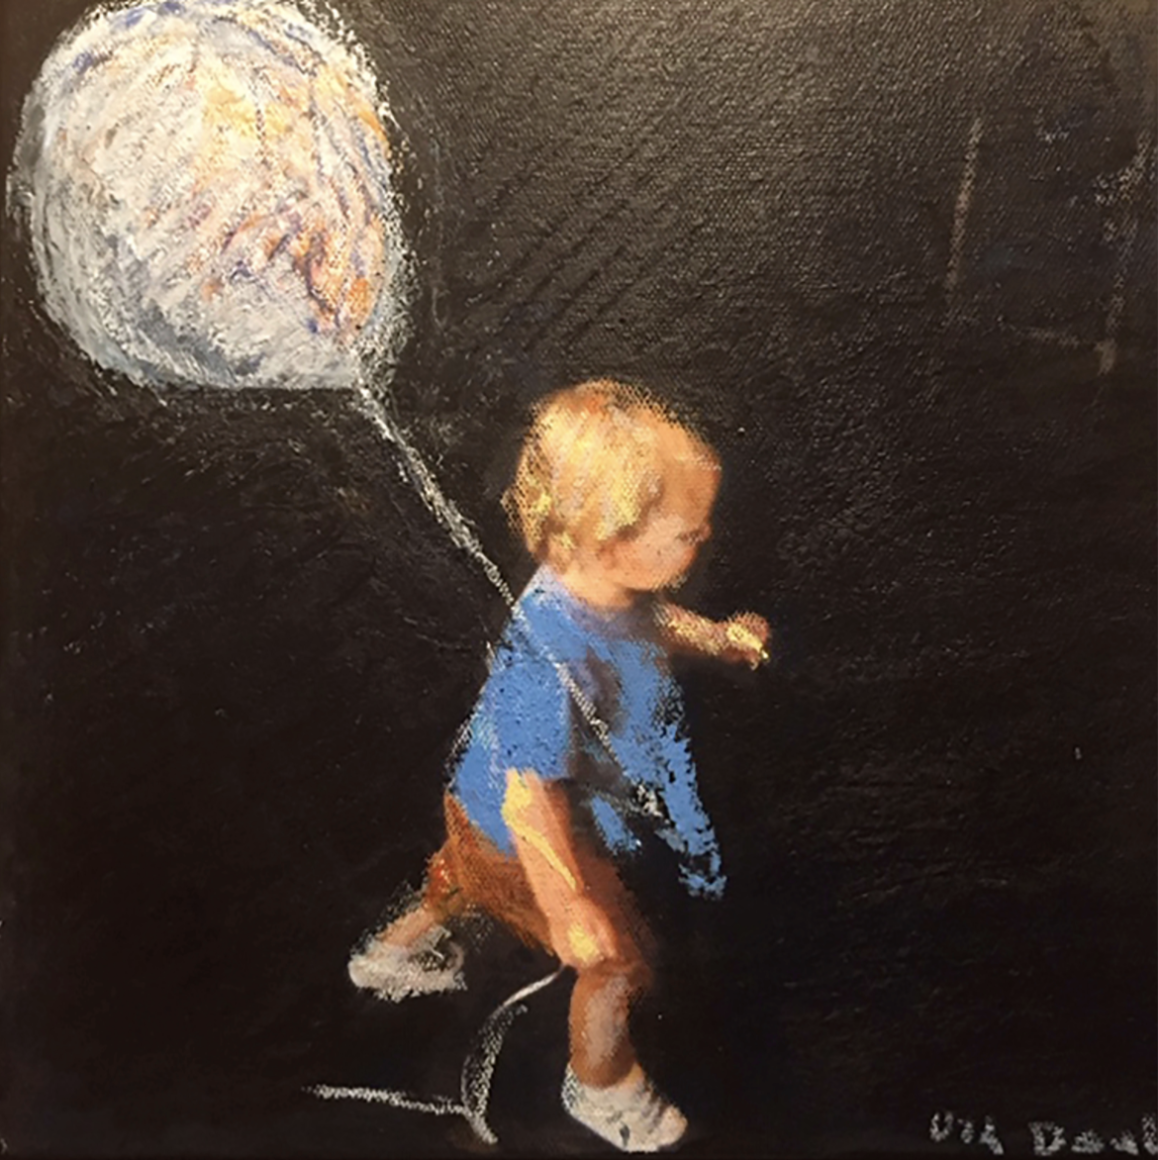 Young child with blond hair in blue shirt on black background seen from above holding a white balloon.